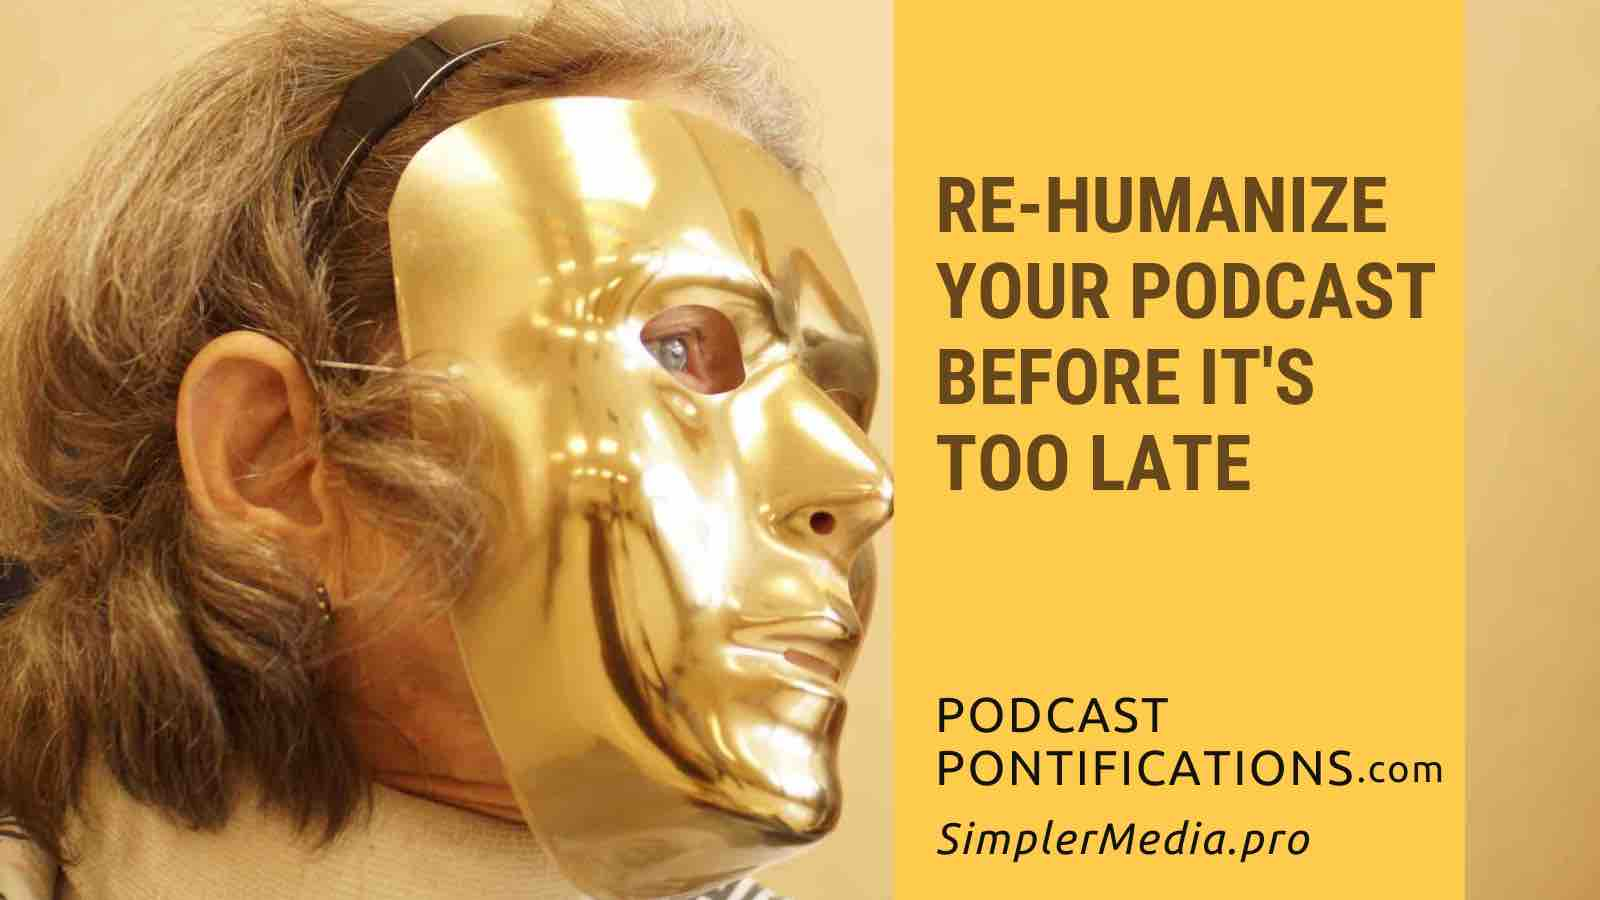 Re-Humanize Your Podcast Before It's Too Late